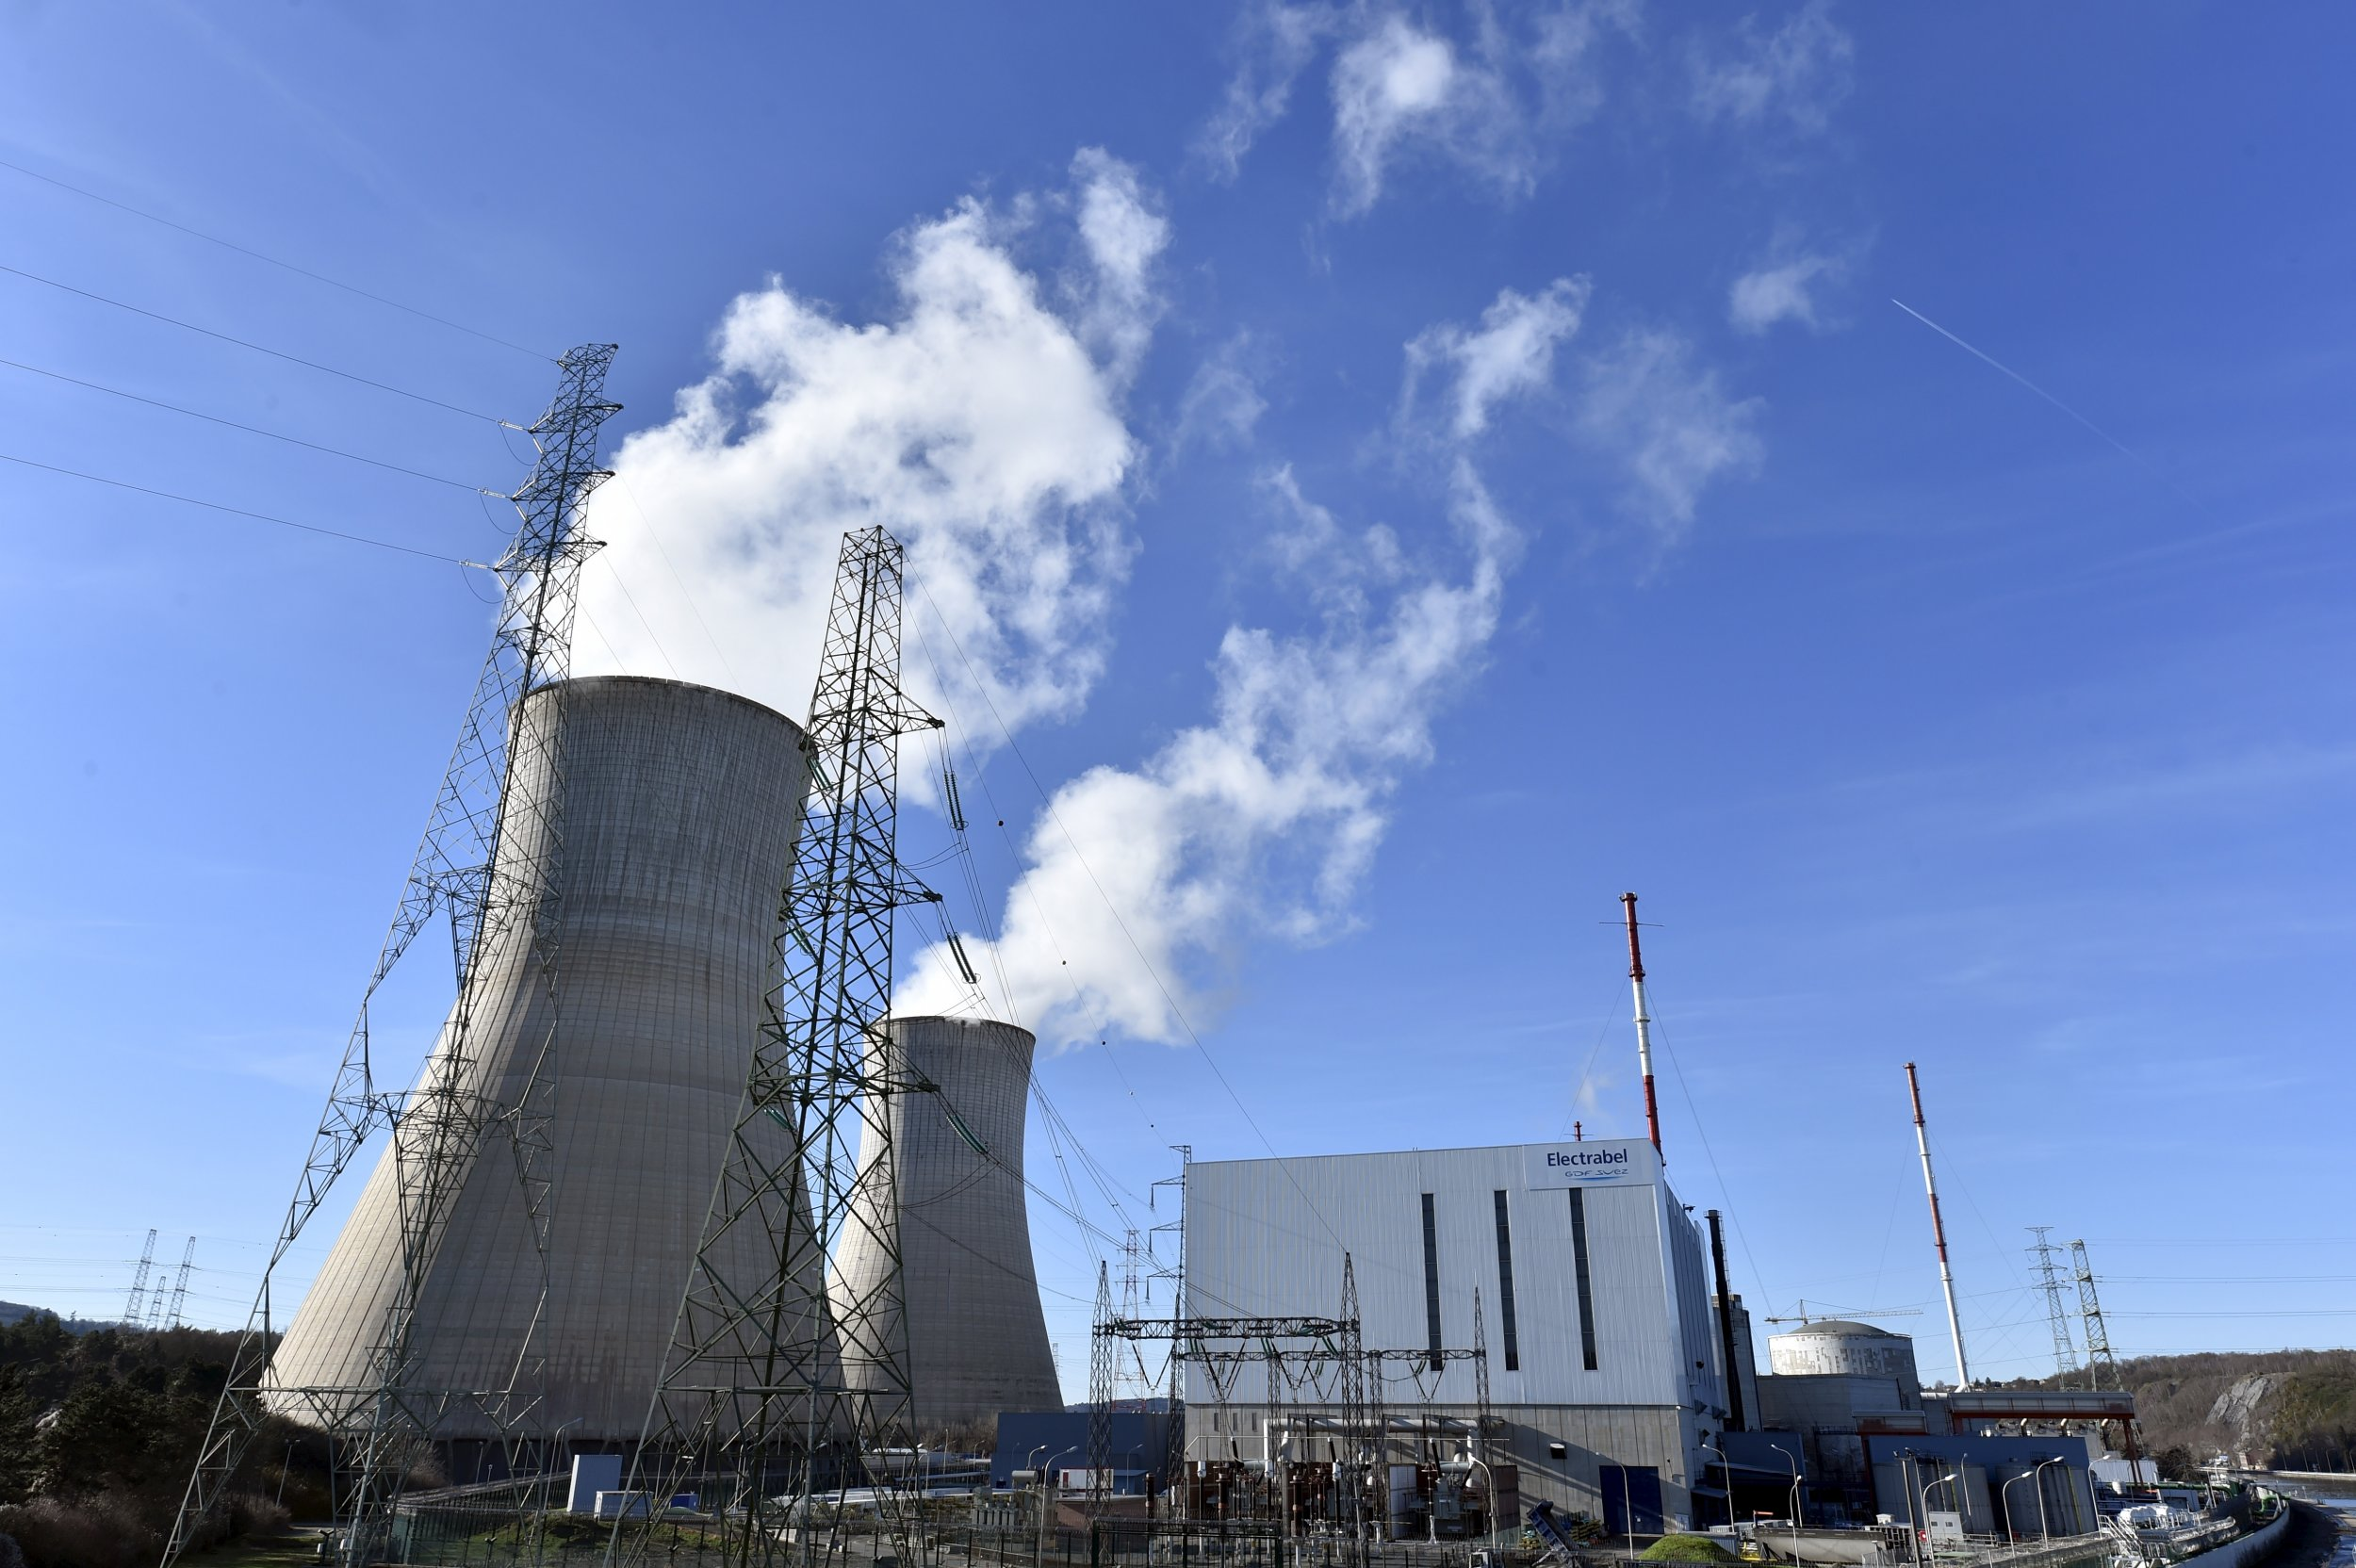 ISIS Brussels Belgium Plot Nuclear